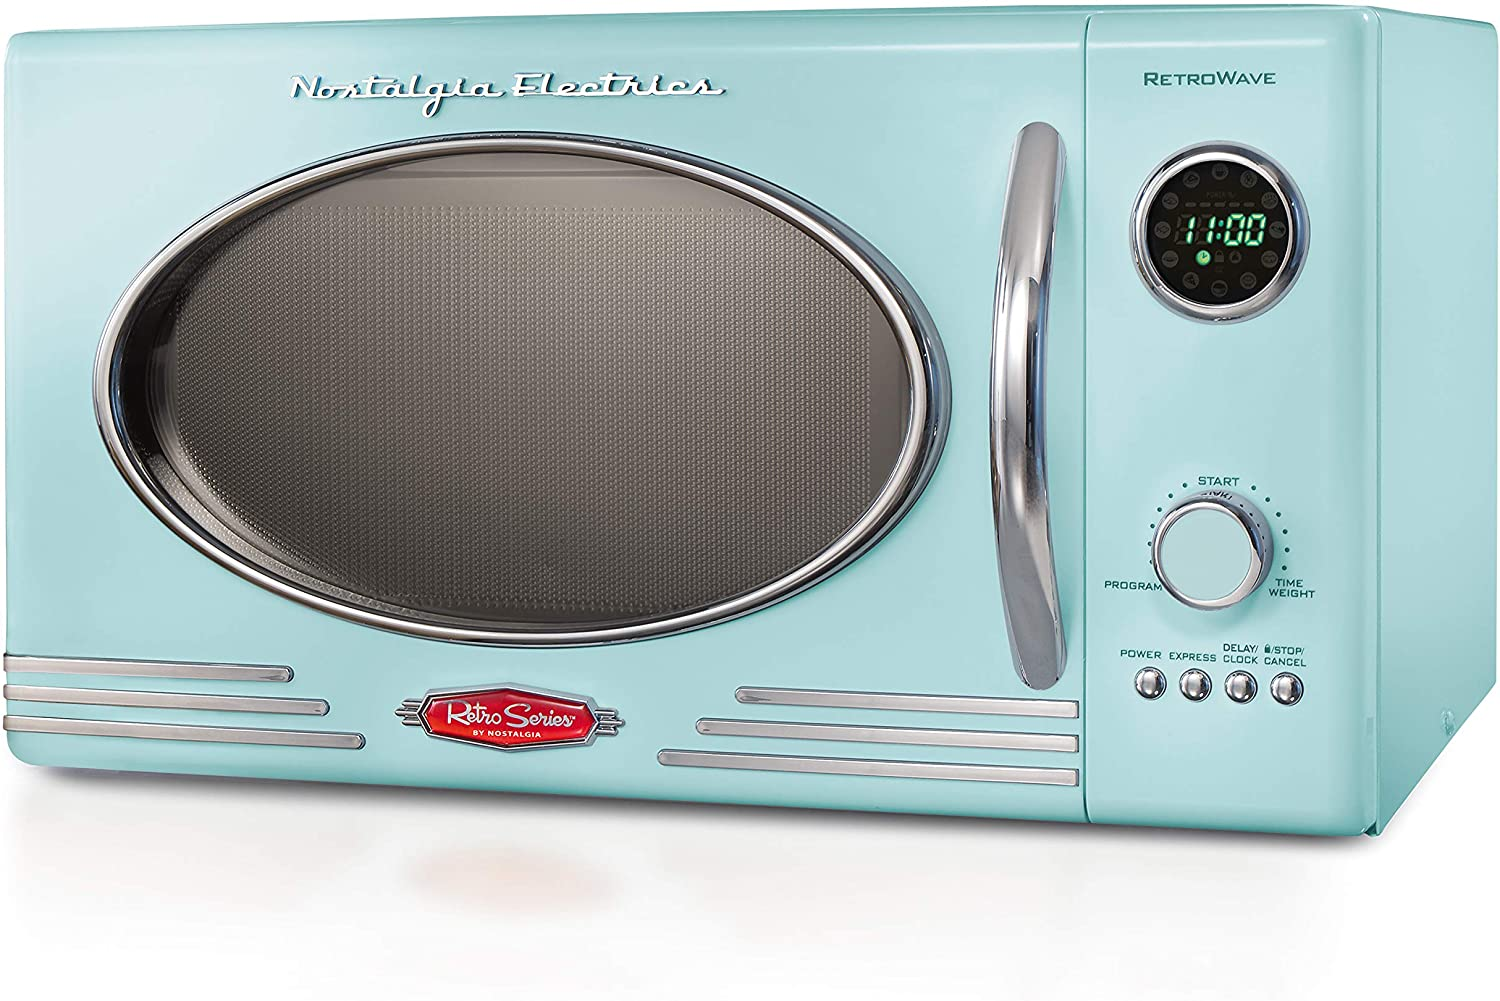 Nostalgia Retro Large Portable Microwave Oven, 800-Watt